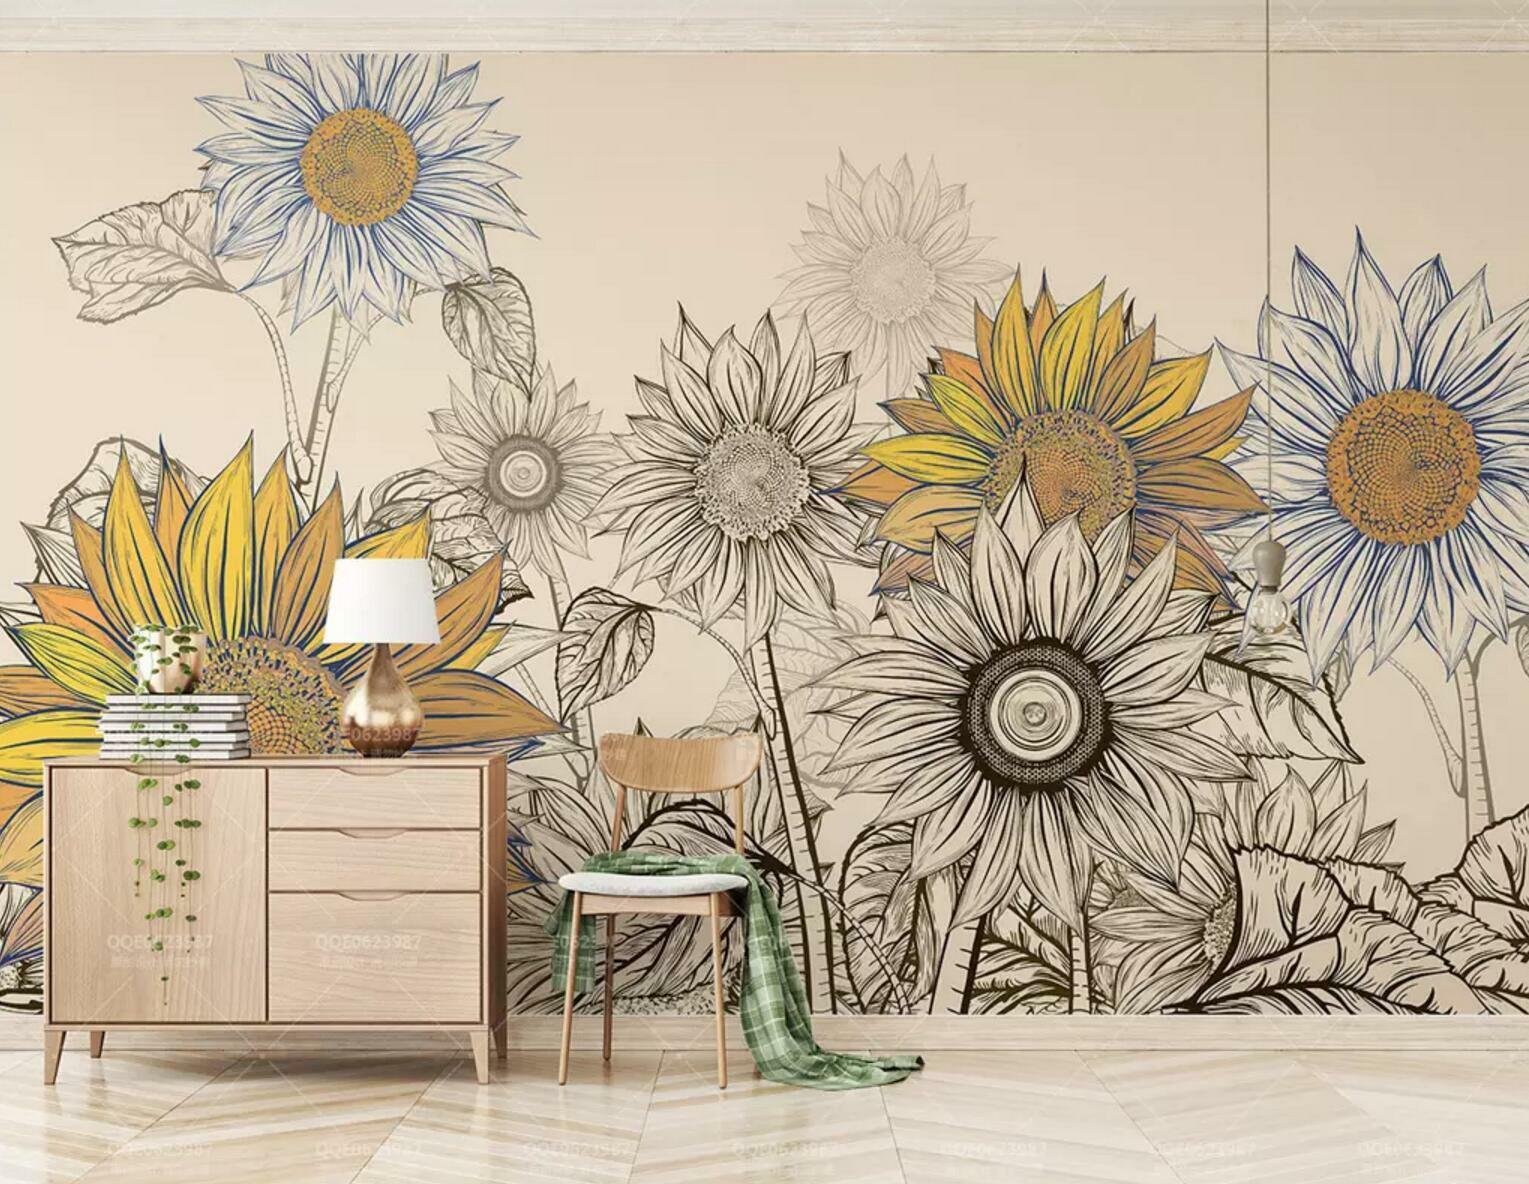 3D Sunflower Paint 51 Wall Paper Exclusive MXY Wallpaper Mural Decal Indoor wall